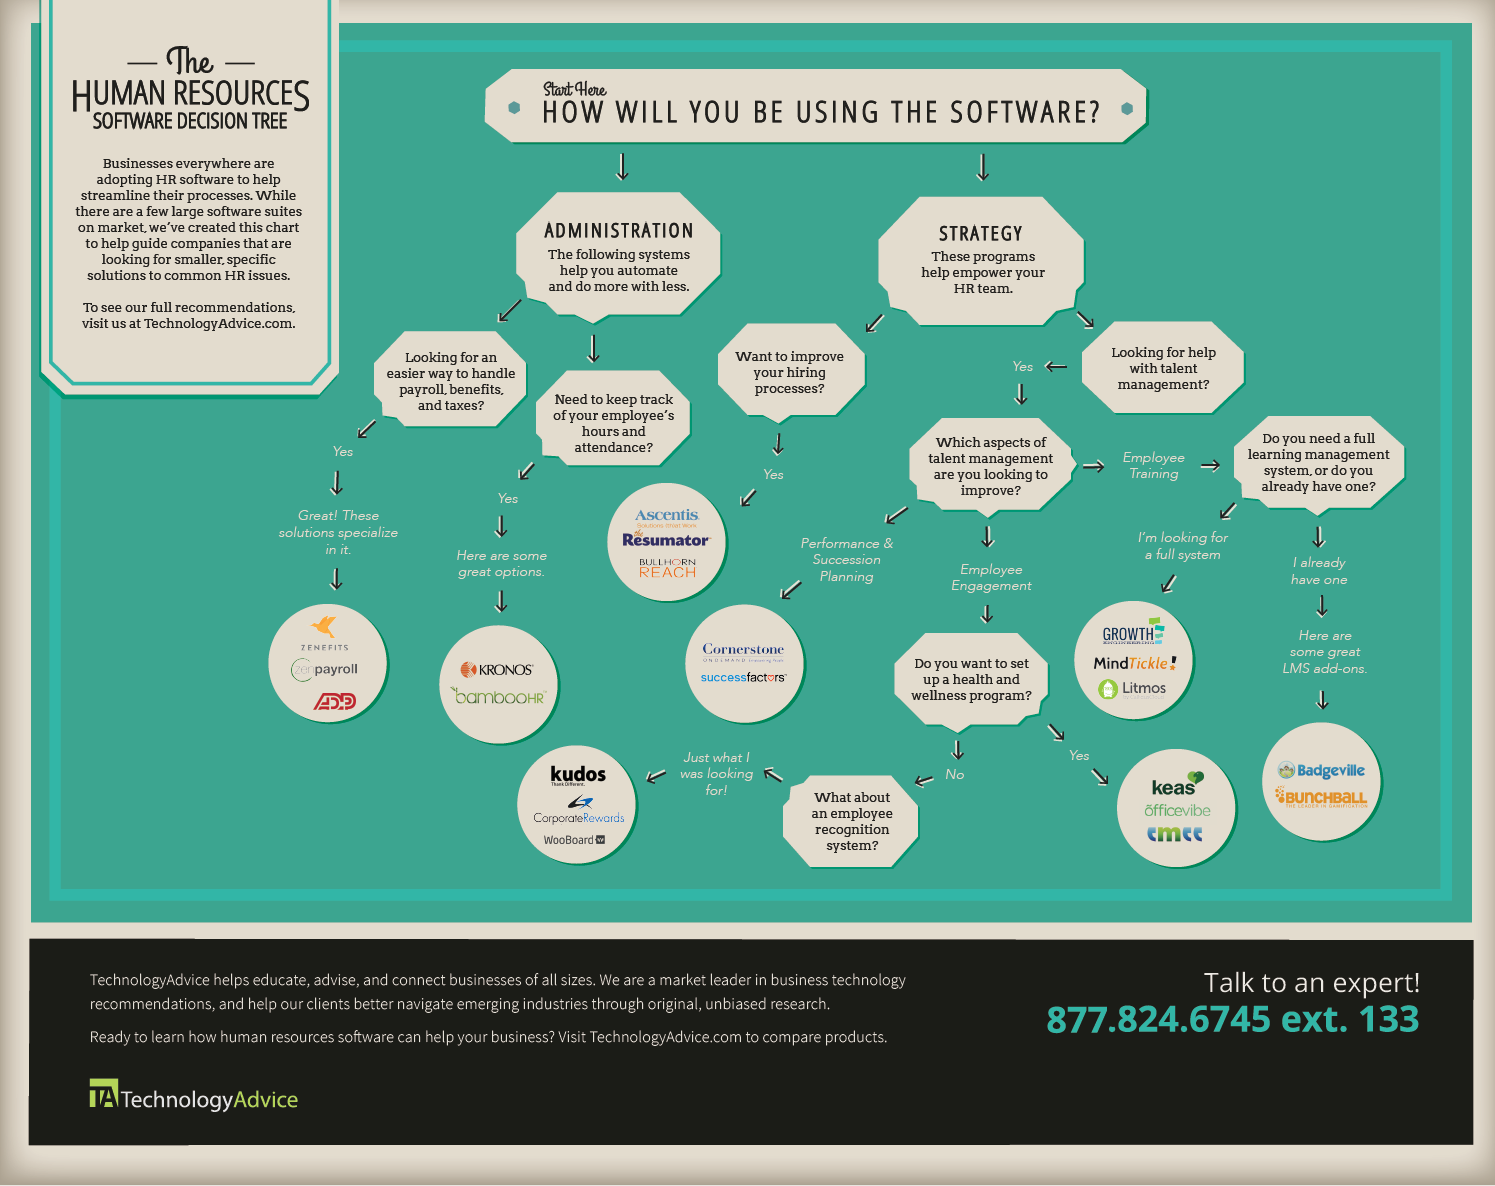 Human Resource Software Decision Tree Infographic